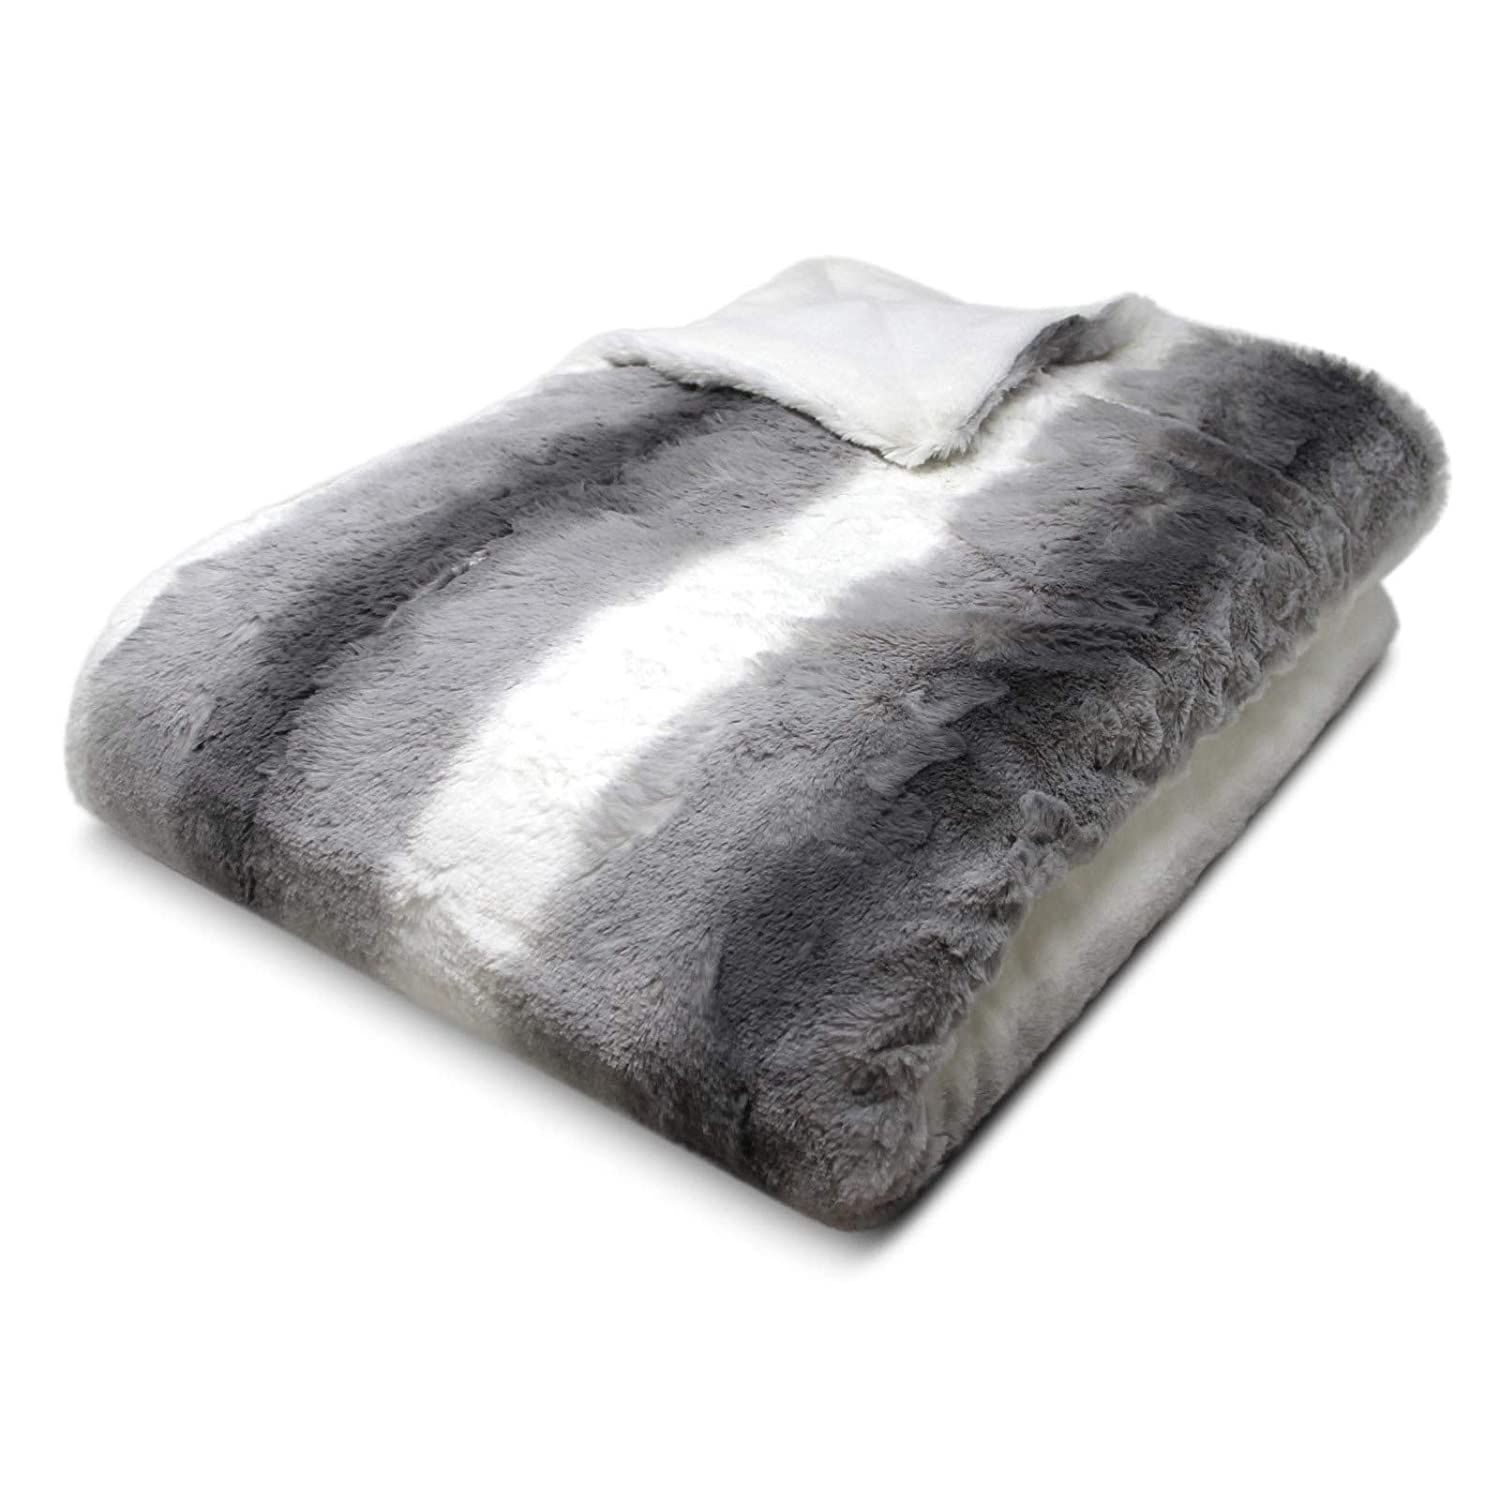 IT IDEAL TEXTILES Luxury Faux Fur Throw, Thick Plush Modern Cosy Throw Blankets, Heavyweight Furry Super Soft Sofa Chair Bed Throws, 130cm x 180cm, Silver, Grey